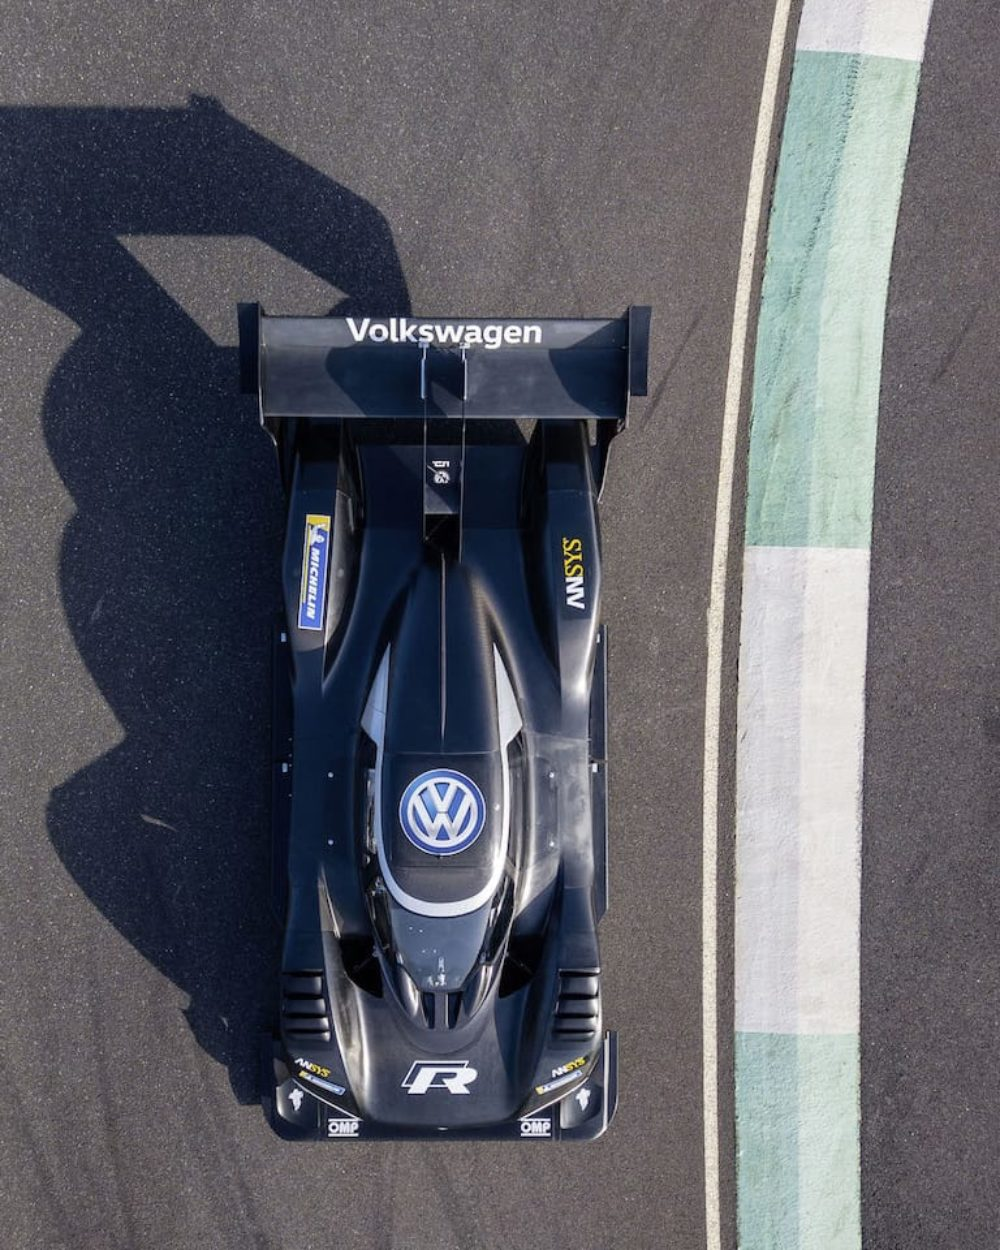 VW's All-electric Hillclimb Monster Hits the Racetrack